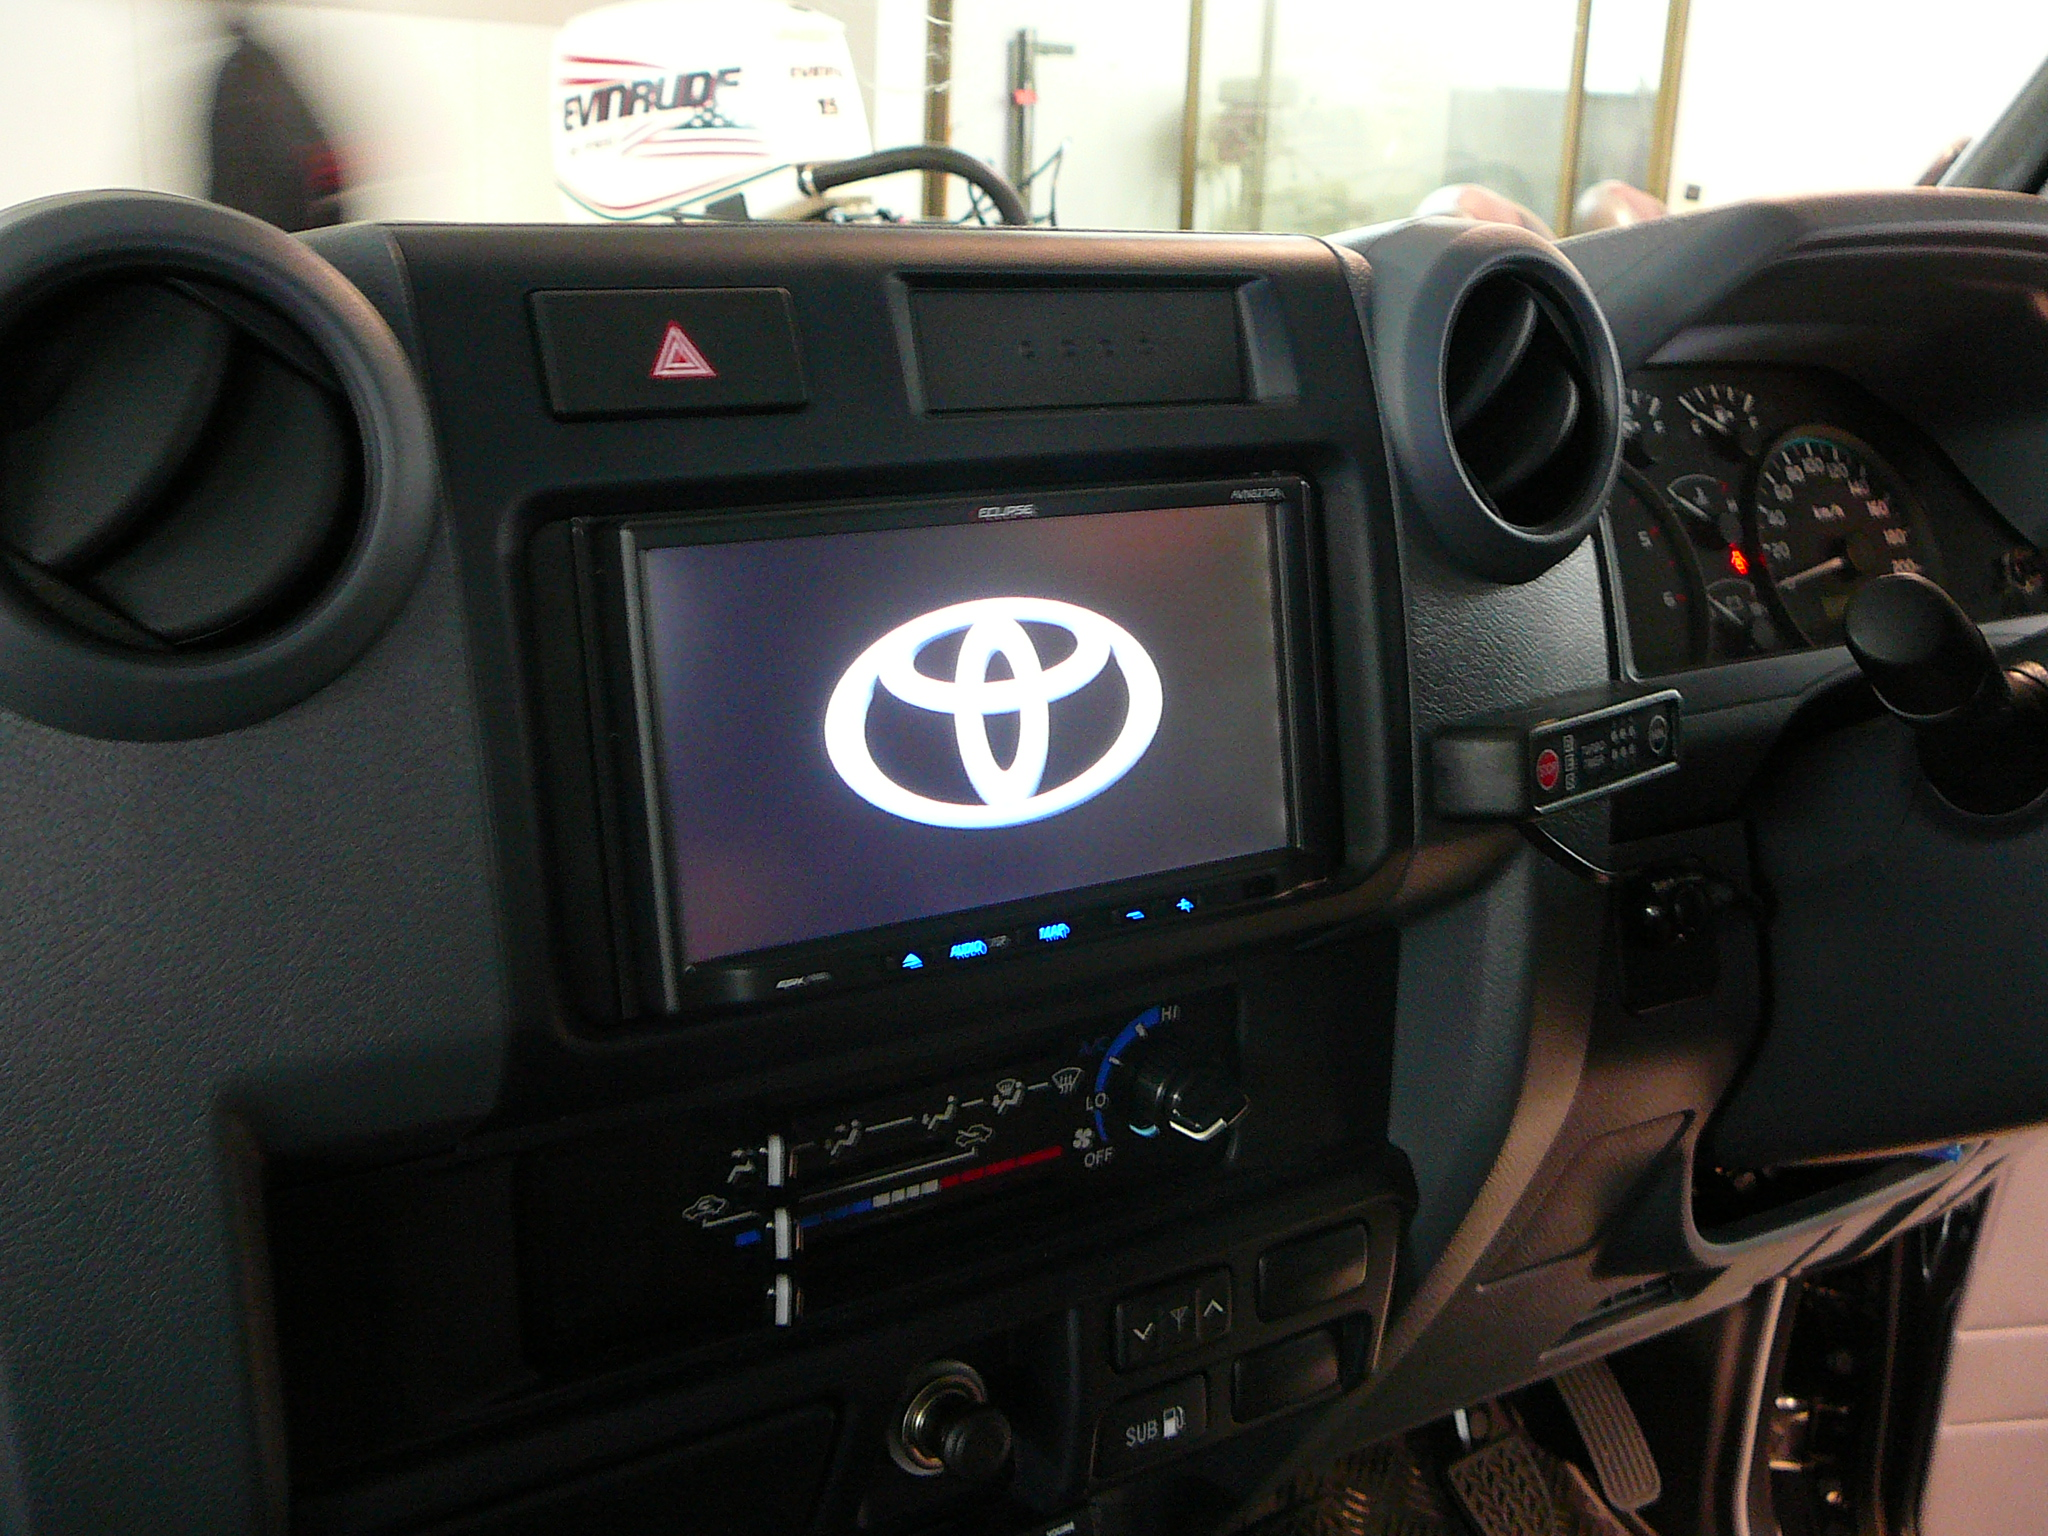 Toyota Landcruiser 70 Series, Eclipse GPS, Dual Reverse Camera